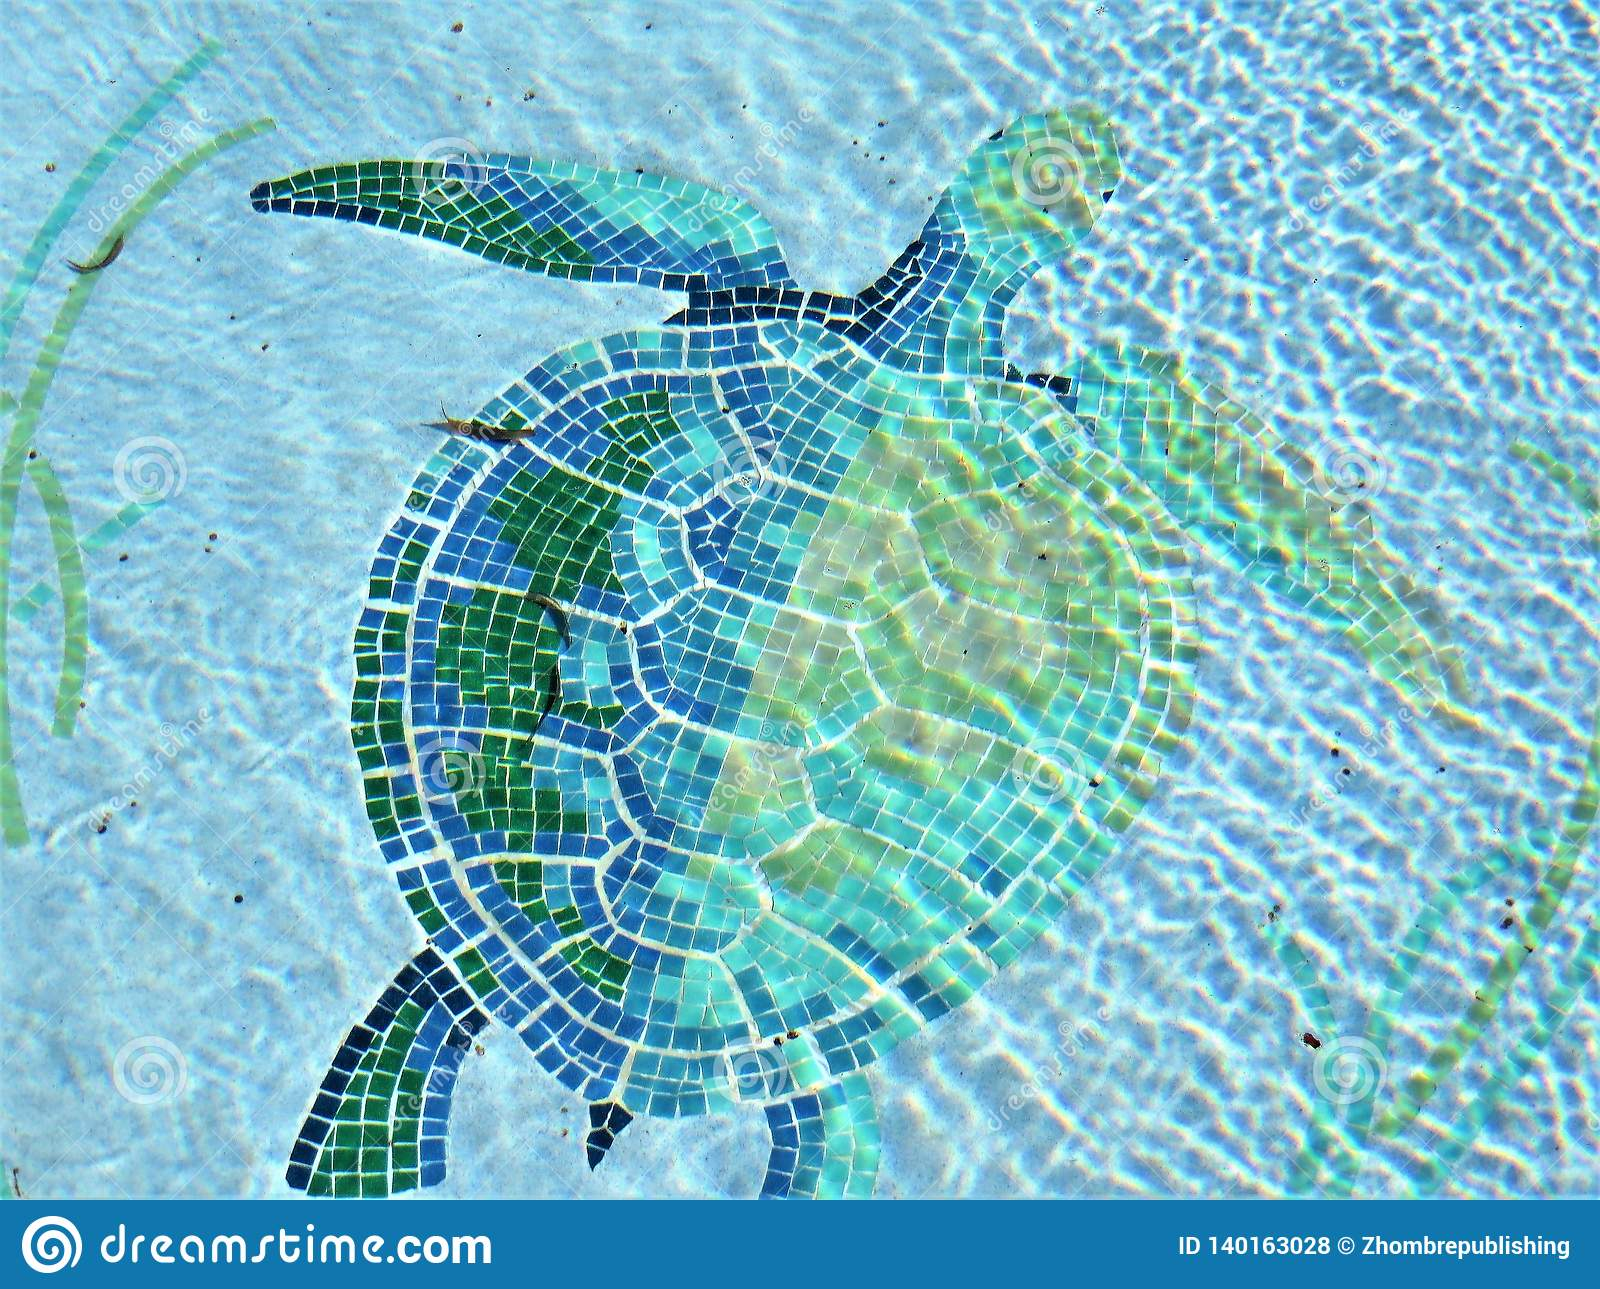 https www dreamstime com tile mosaic depicting swimming turtle decorating pool residential home florida image140163028